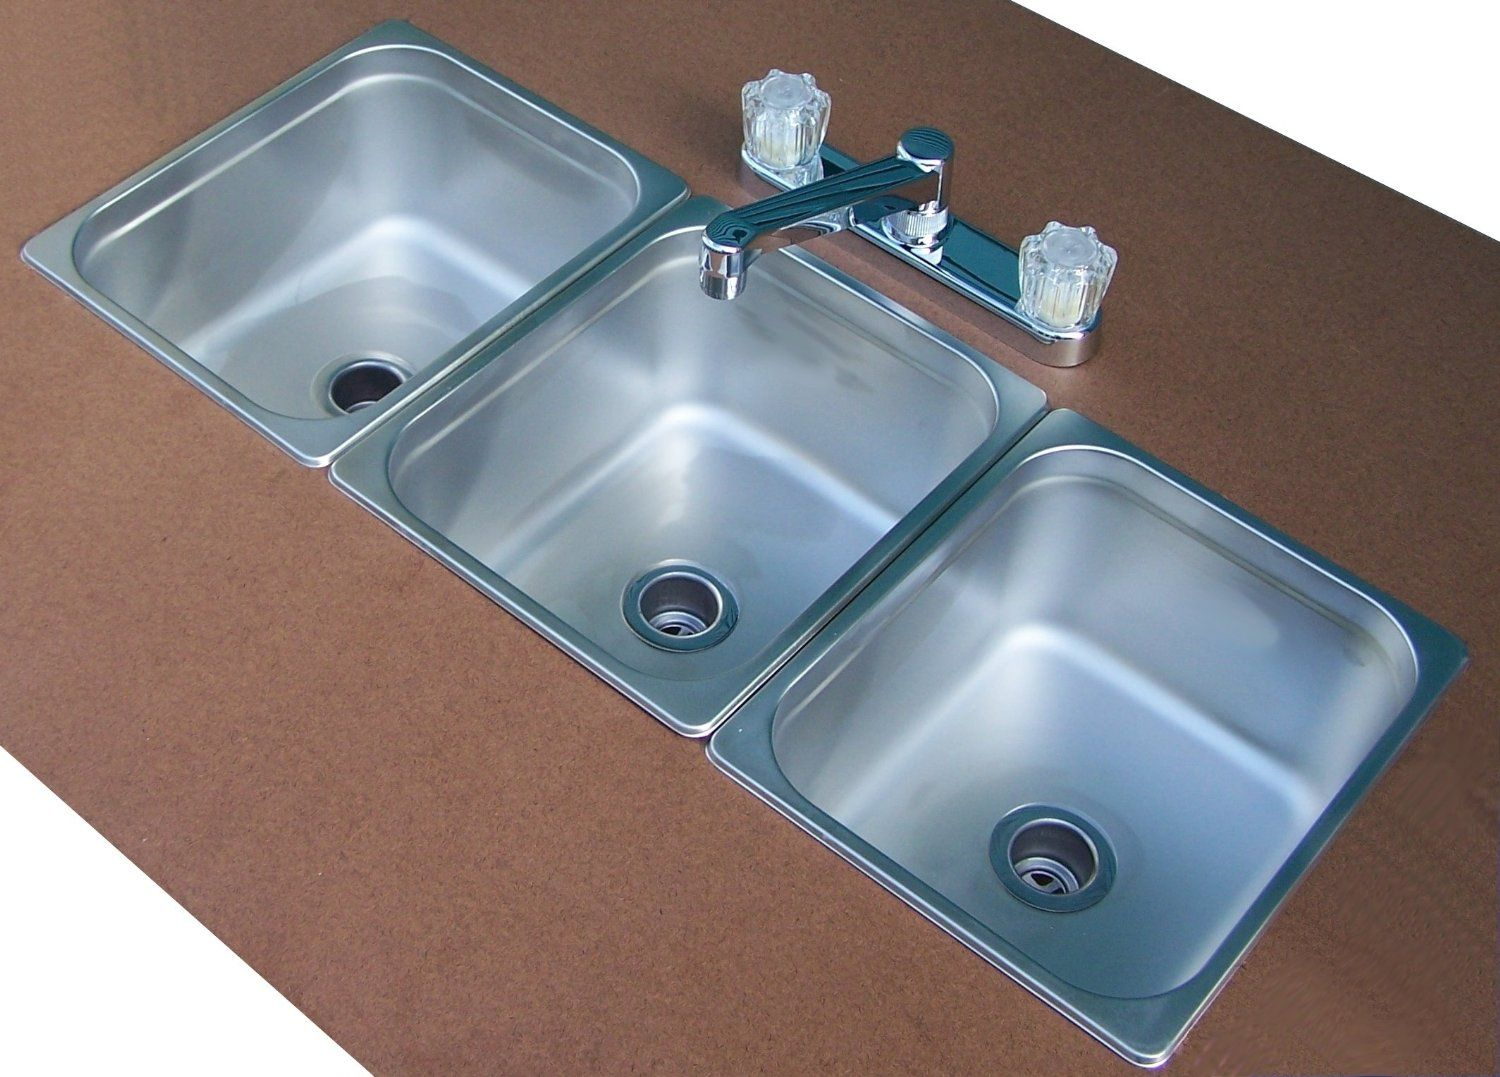 triple basin kitchen sink If you love to cook...this is great ...